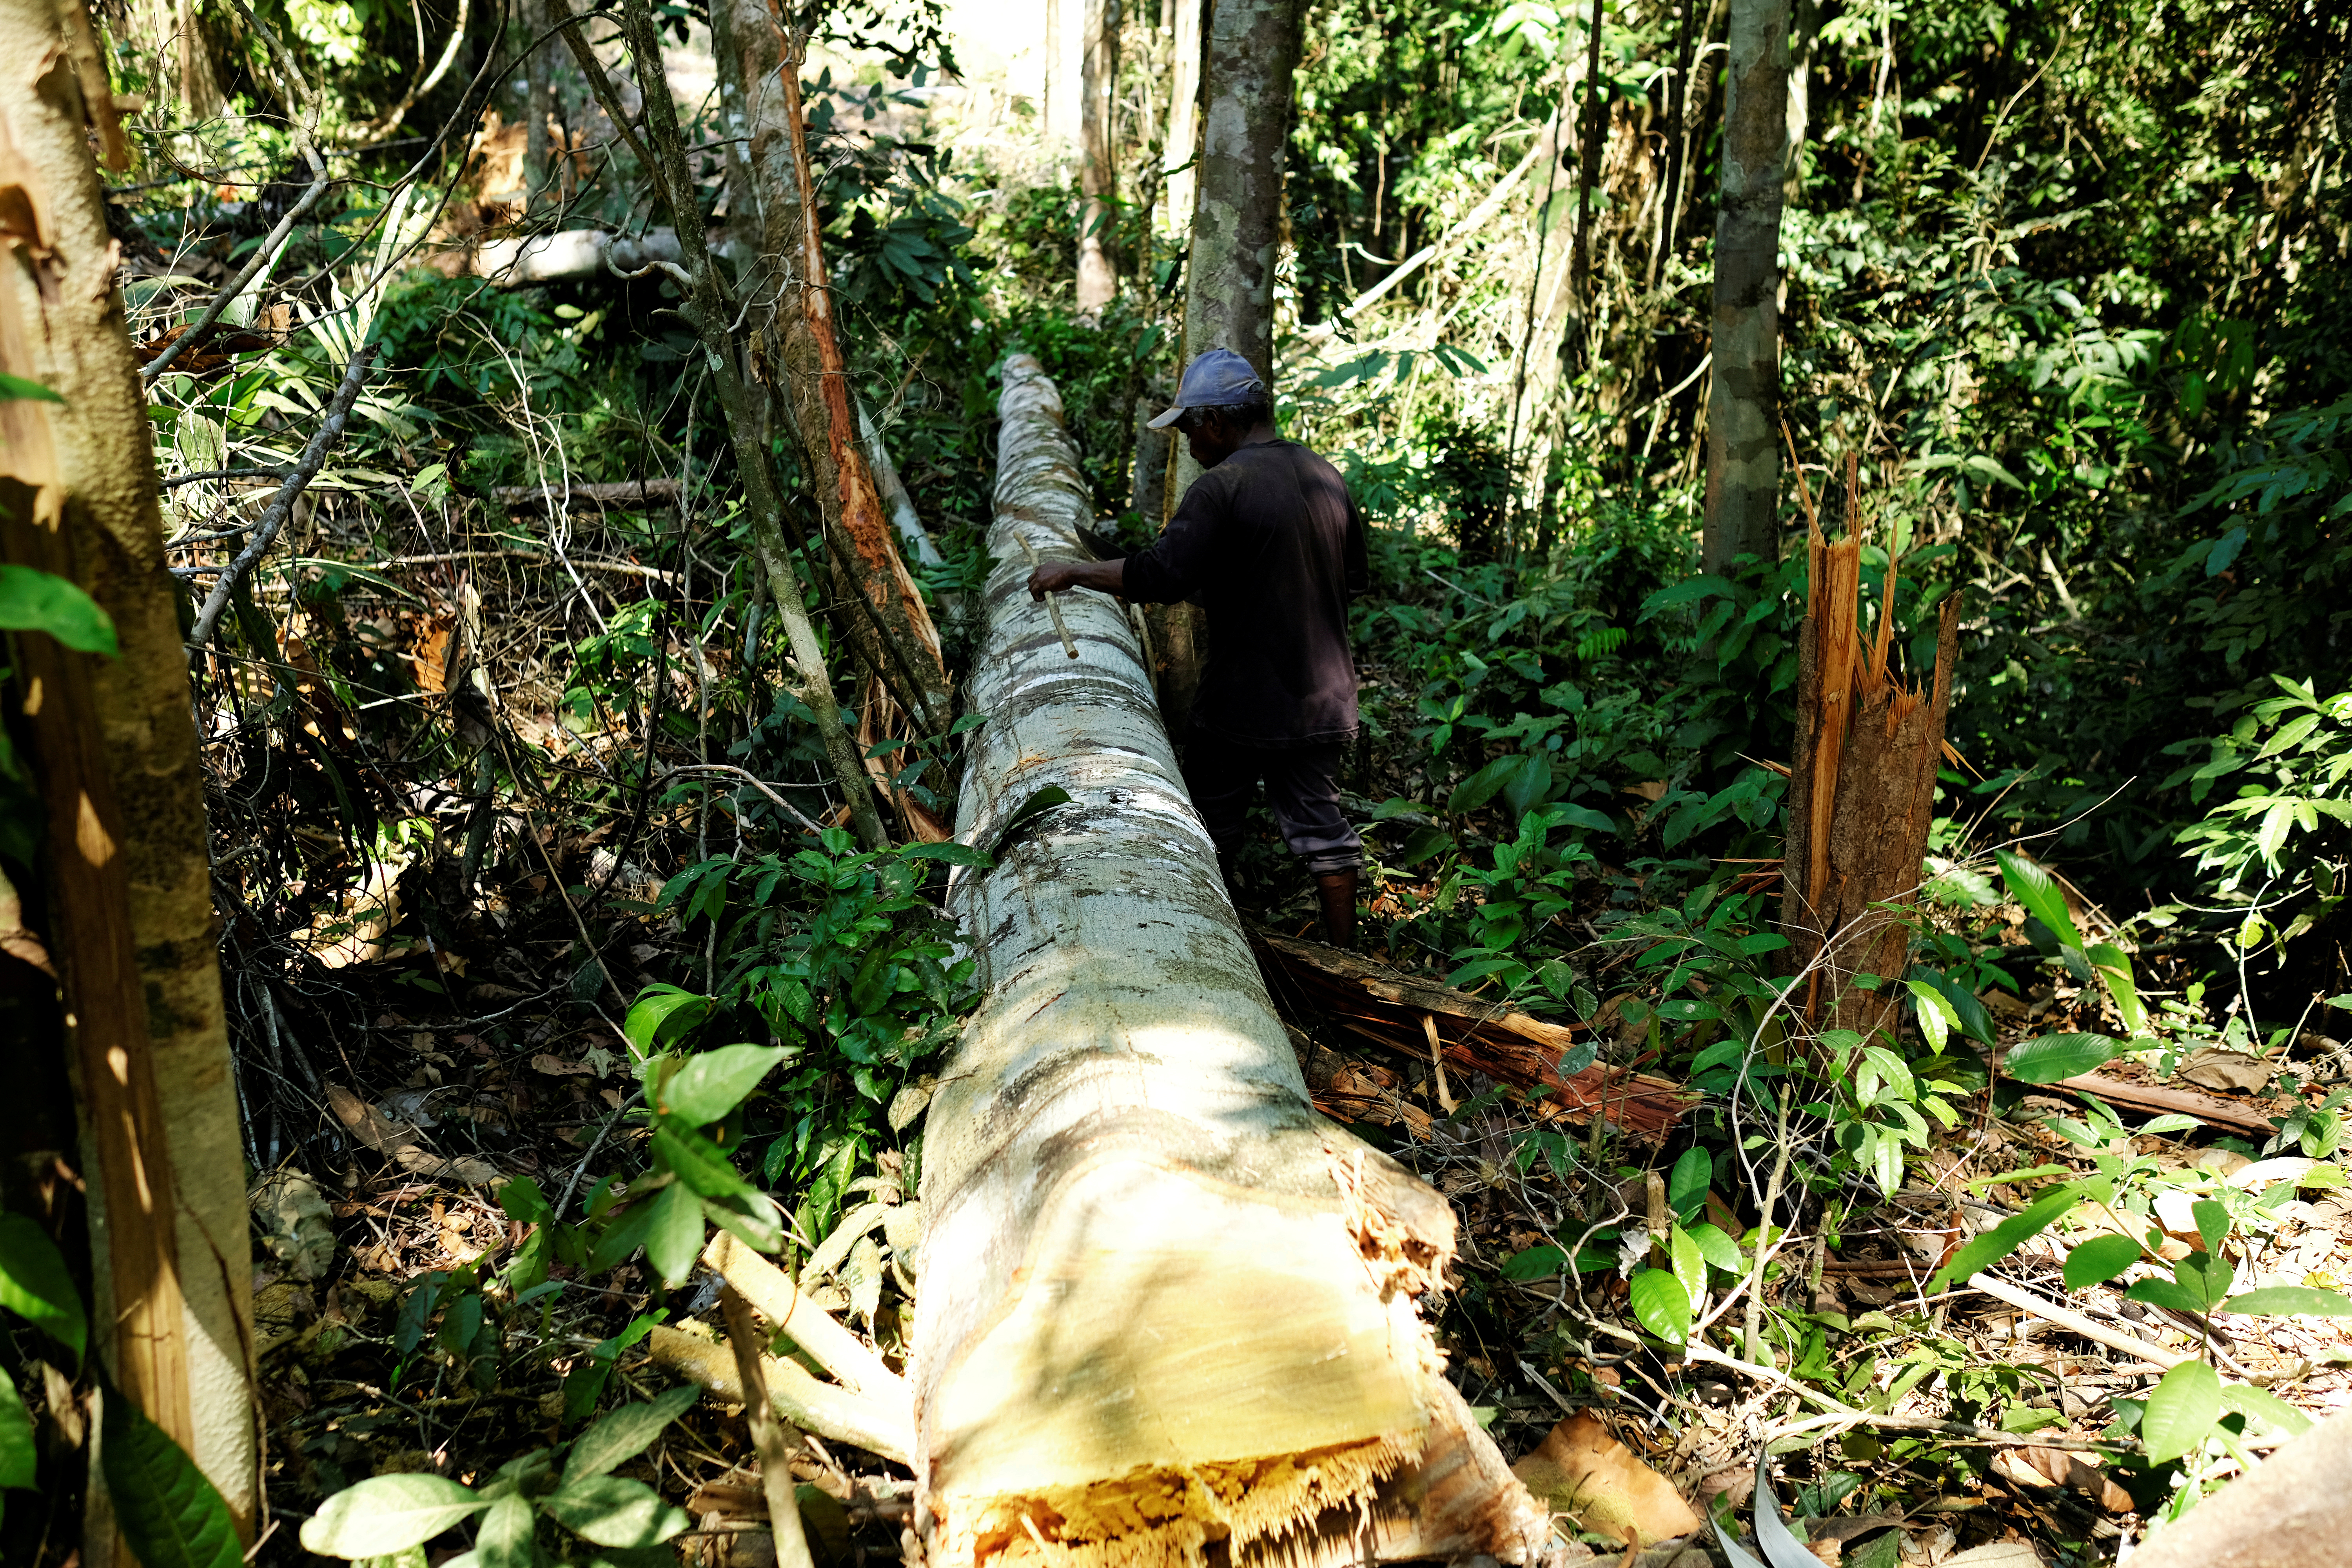 A man measures a tree after cutting it down in a forest in the municipality of Itaituba in Para state, Brazil, August 7, 2017. REUTERS/Nacho Doce/File Photo